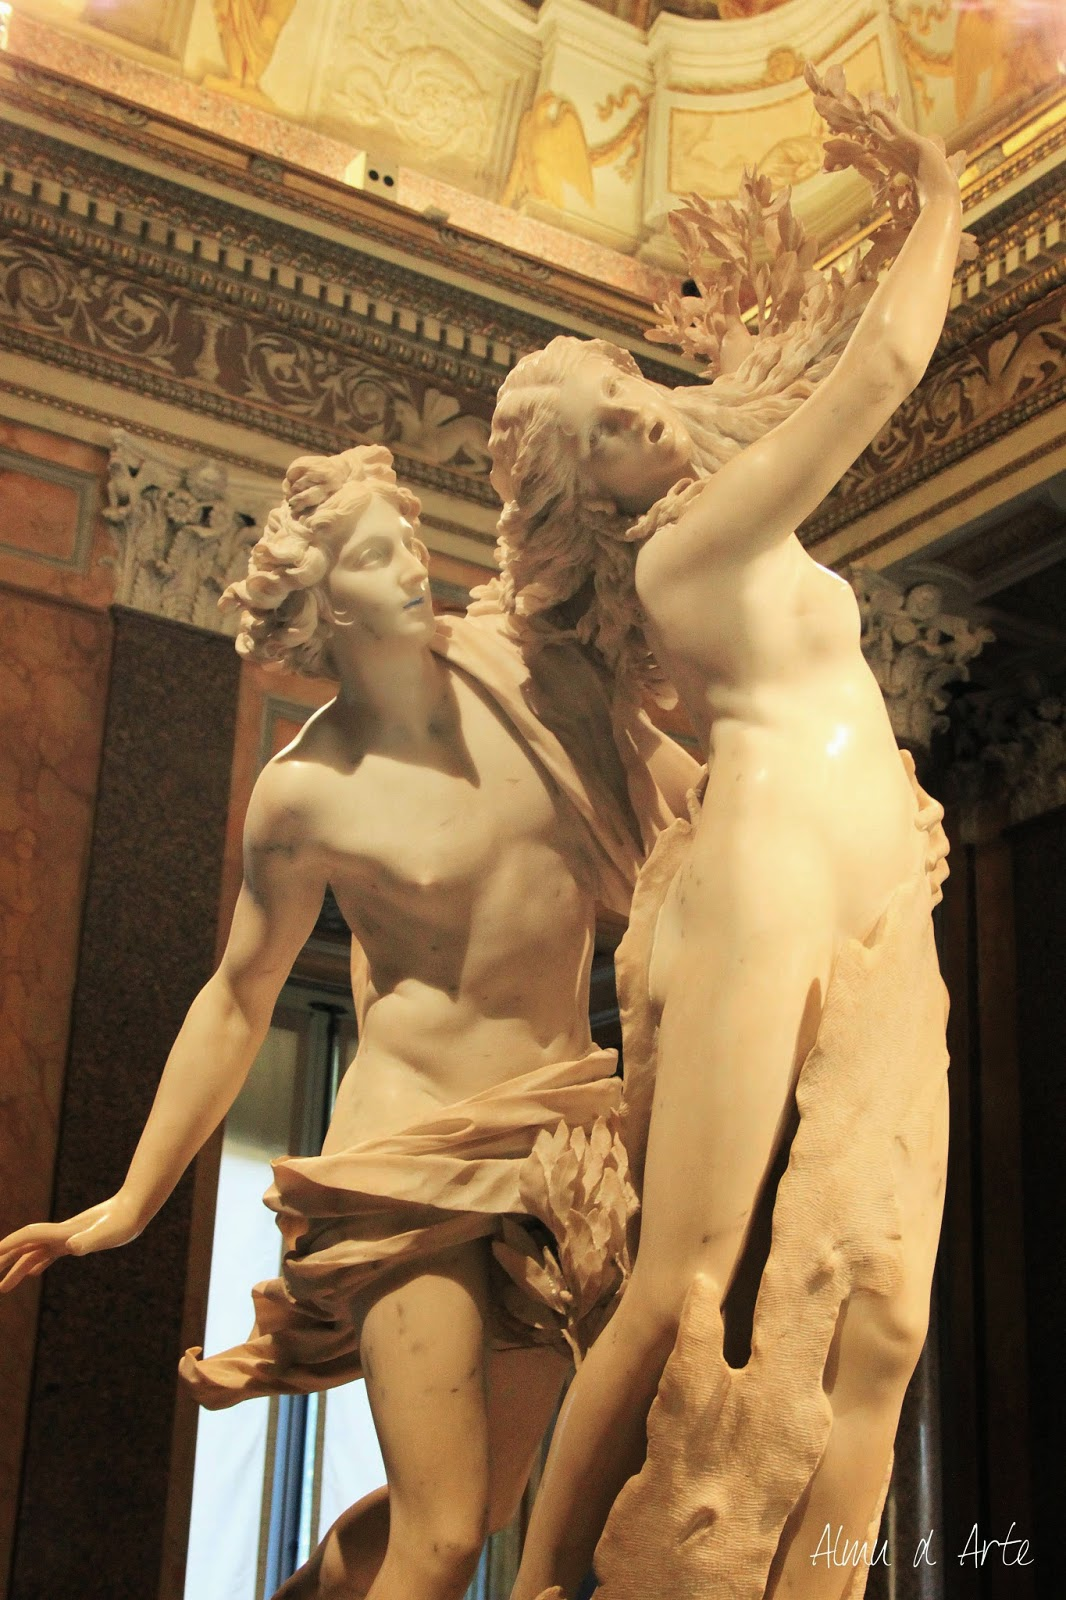 Apolo y Dafne d Bernini